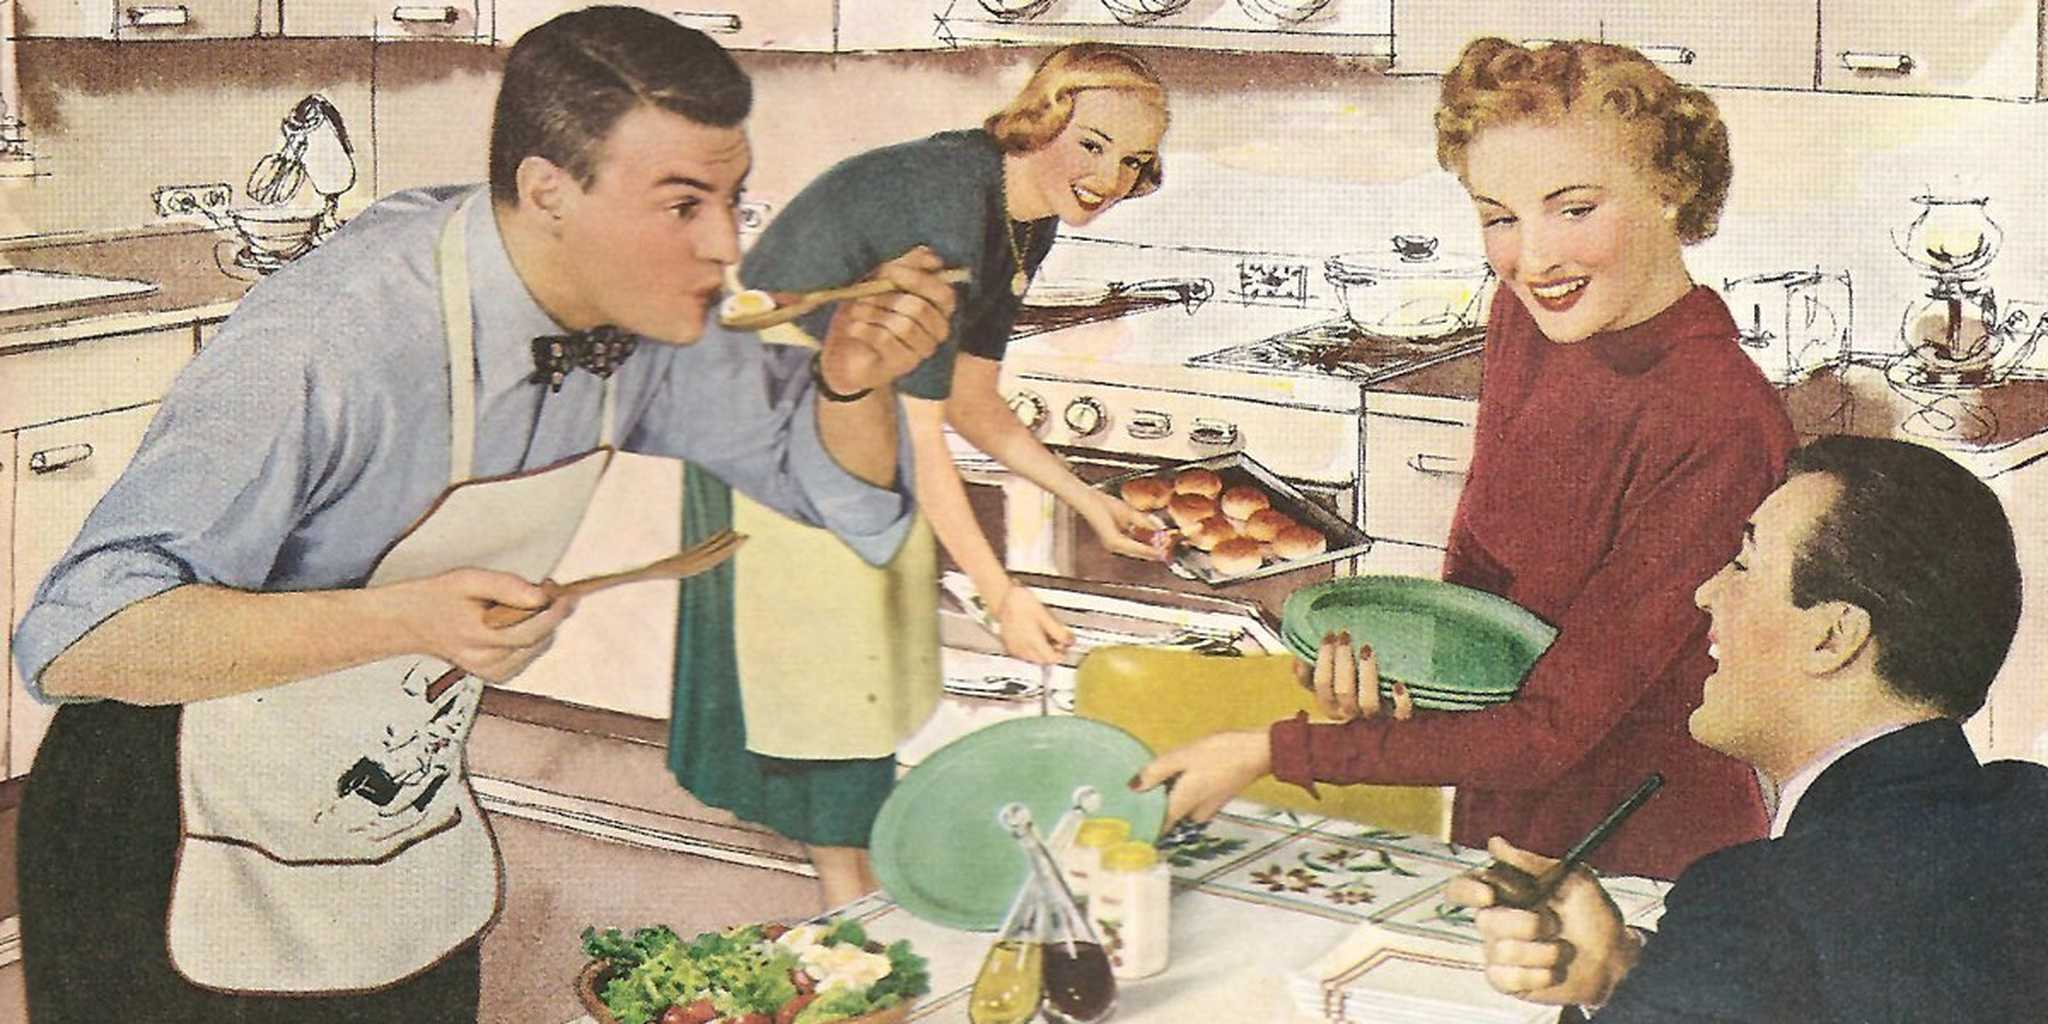 Helping in the kitchen vintage image